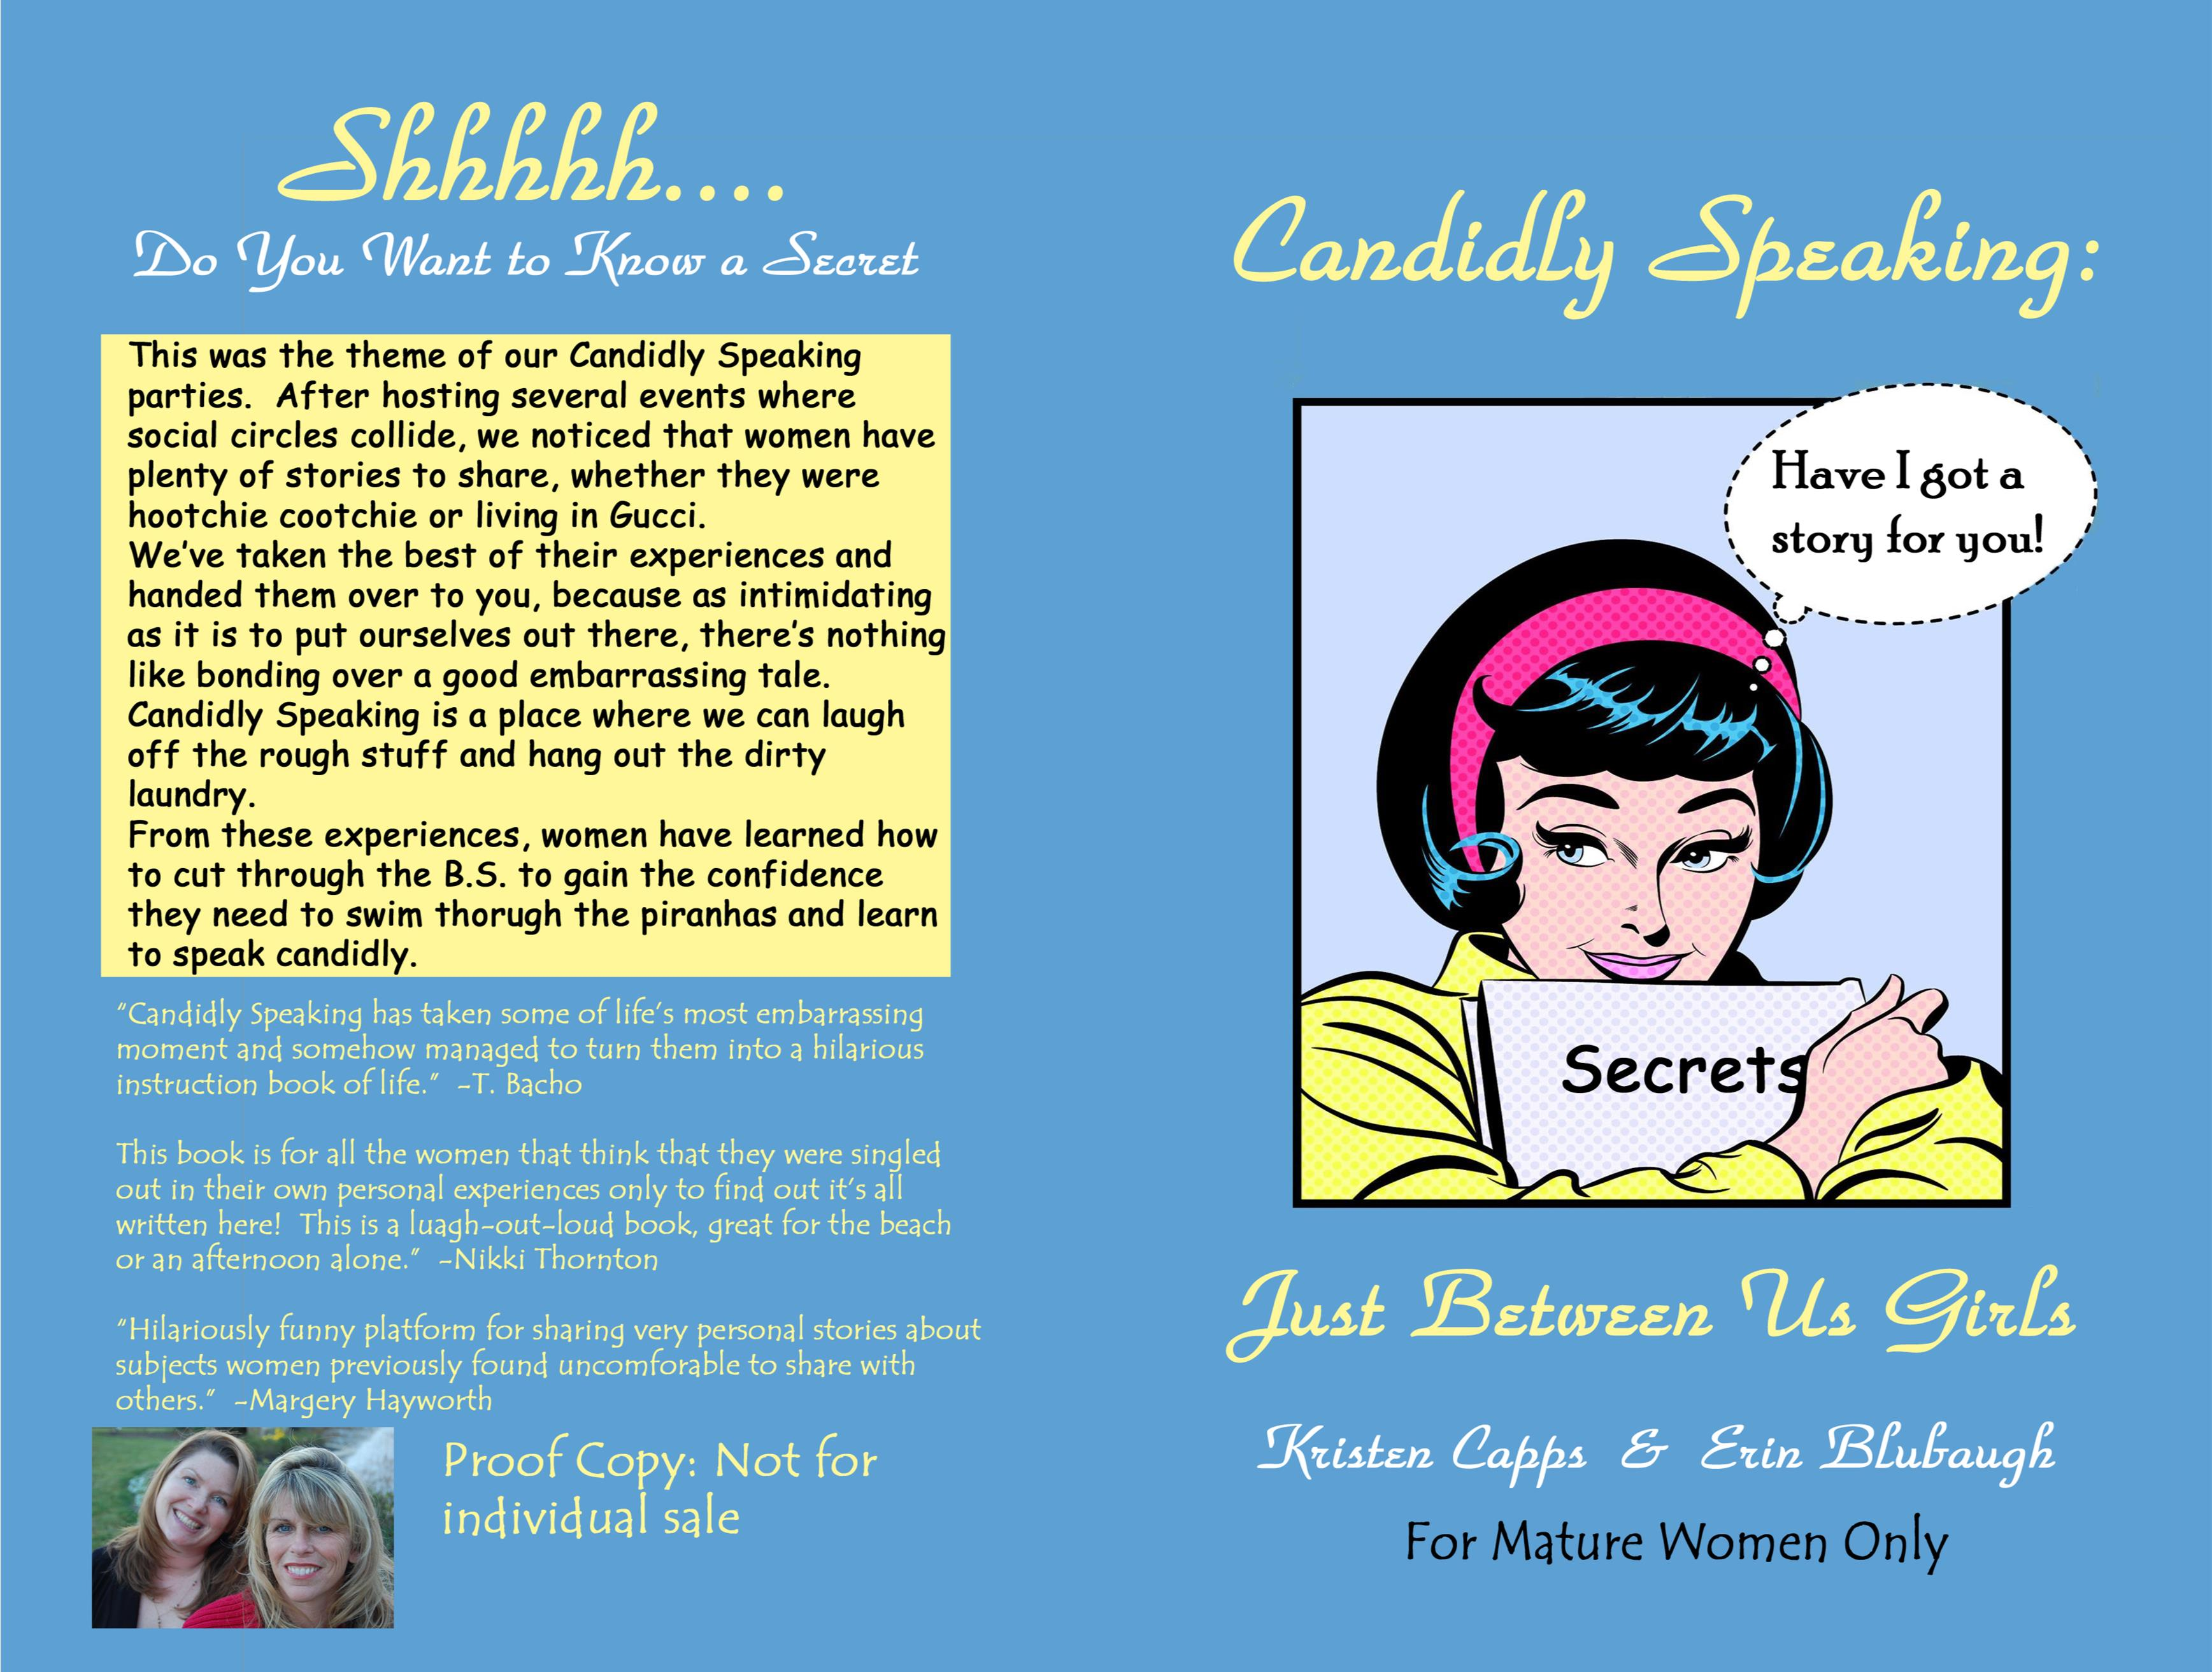 Candidly Speaking: Just Between Us Girls cover image